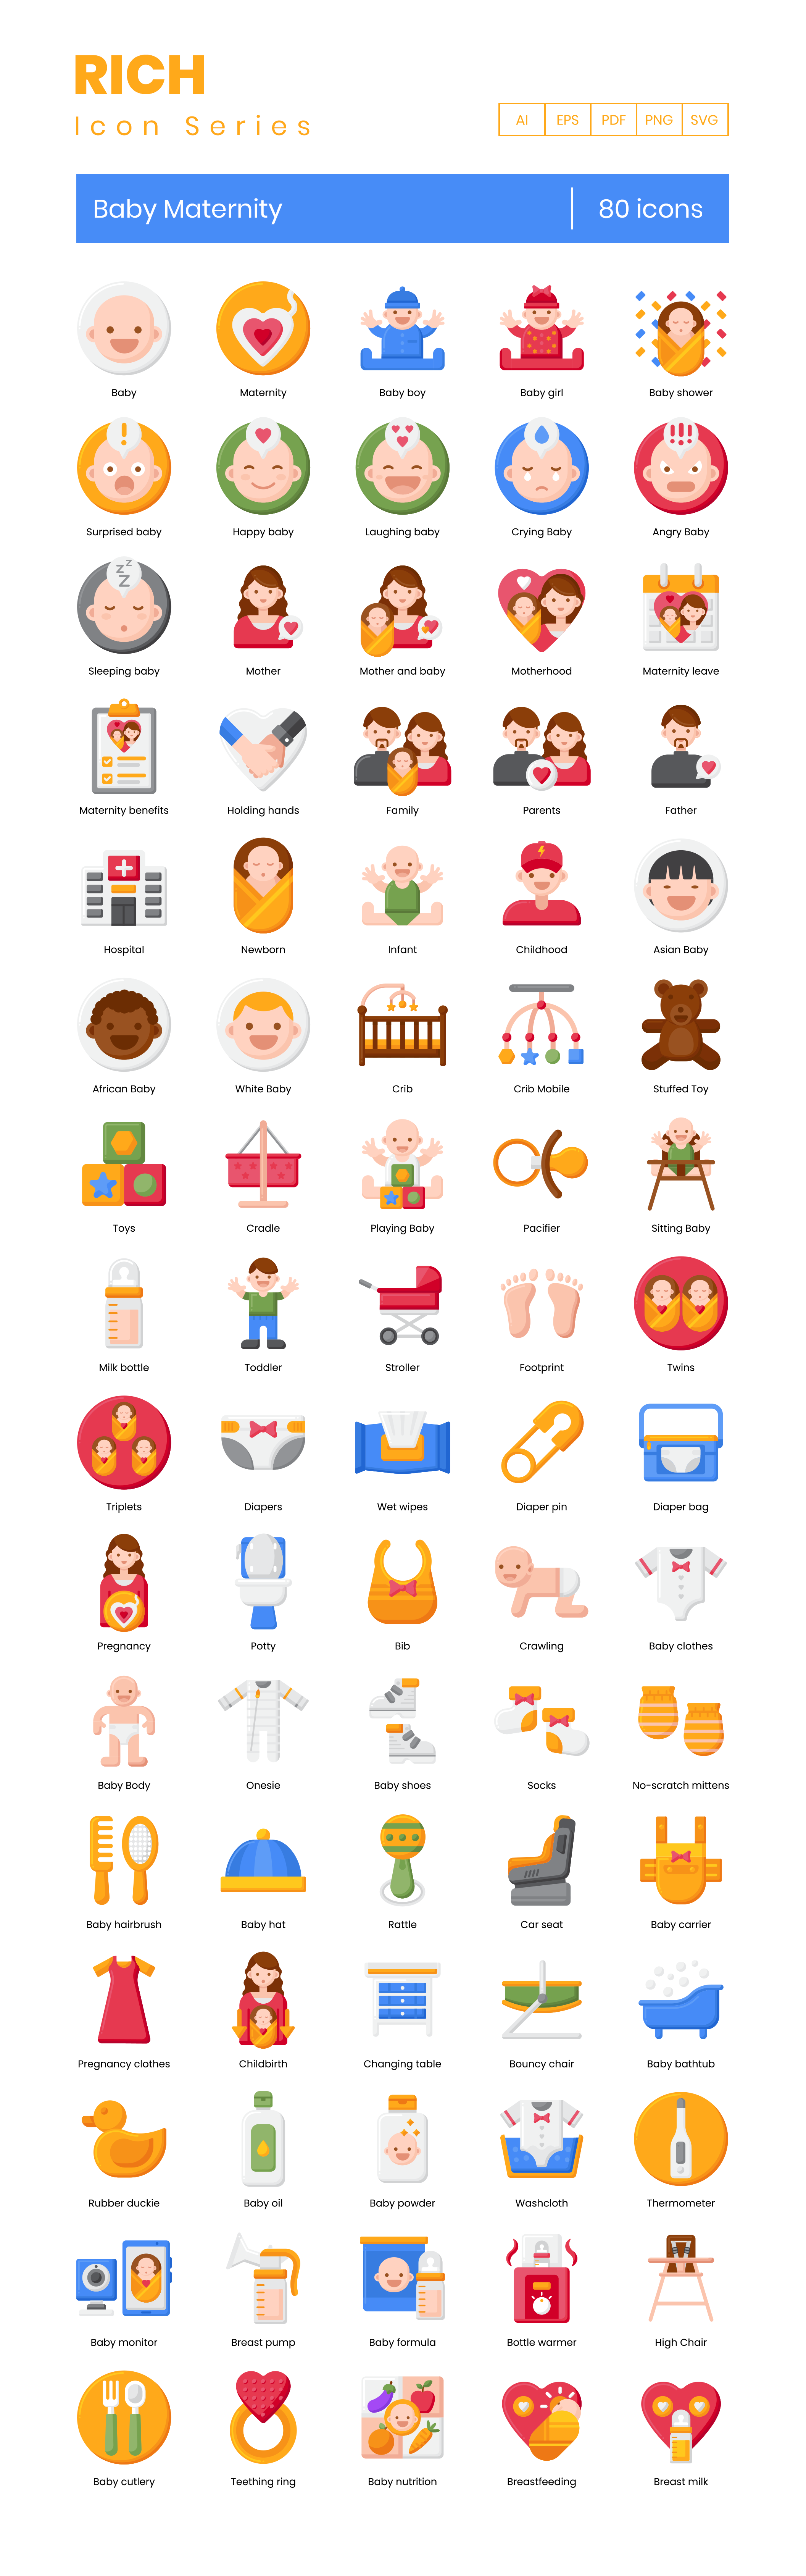 Baby Maternity Vector Icons Preview Image